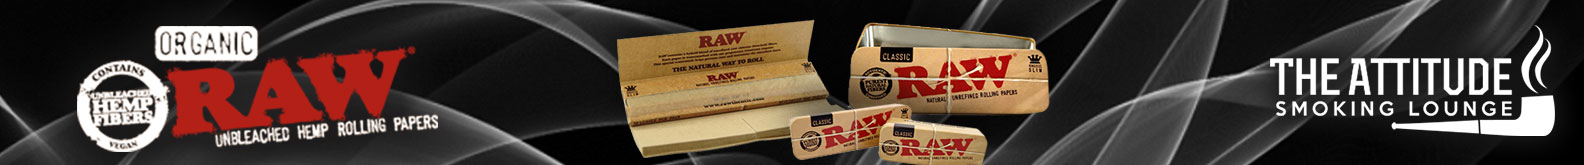 Raw Rolling Papers And Accessories Organic Hemp Papers